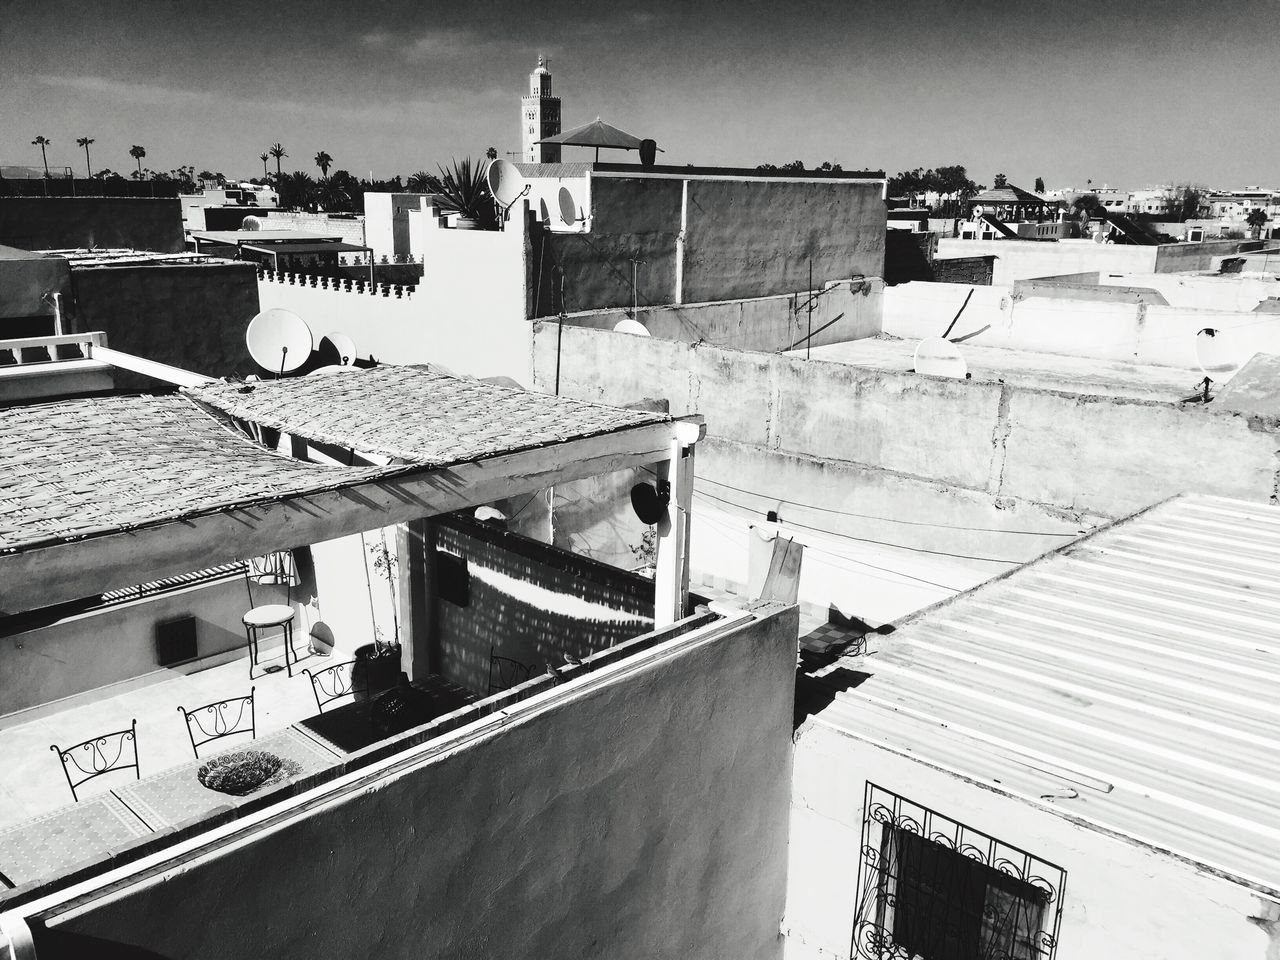 Built Structure Architecture Building Exterior Roof House Day High Angle View Outdoors Residential Building No People Sky Tiled Roof  Marrakech